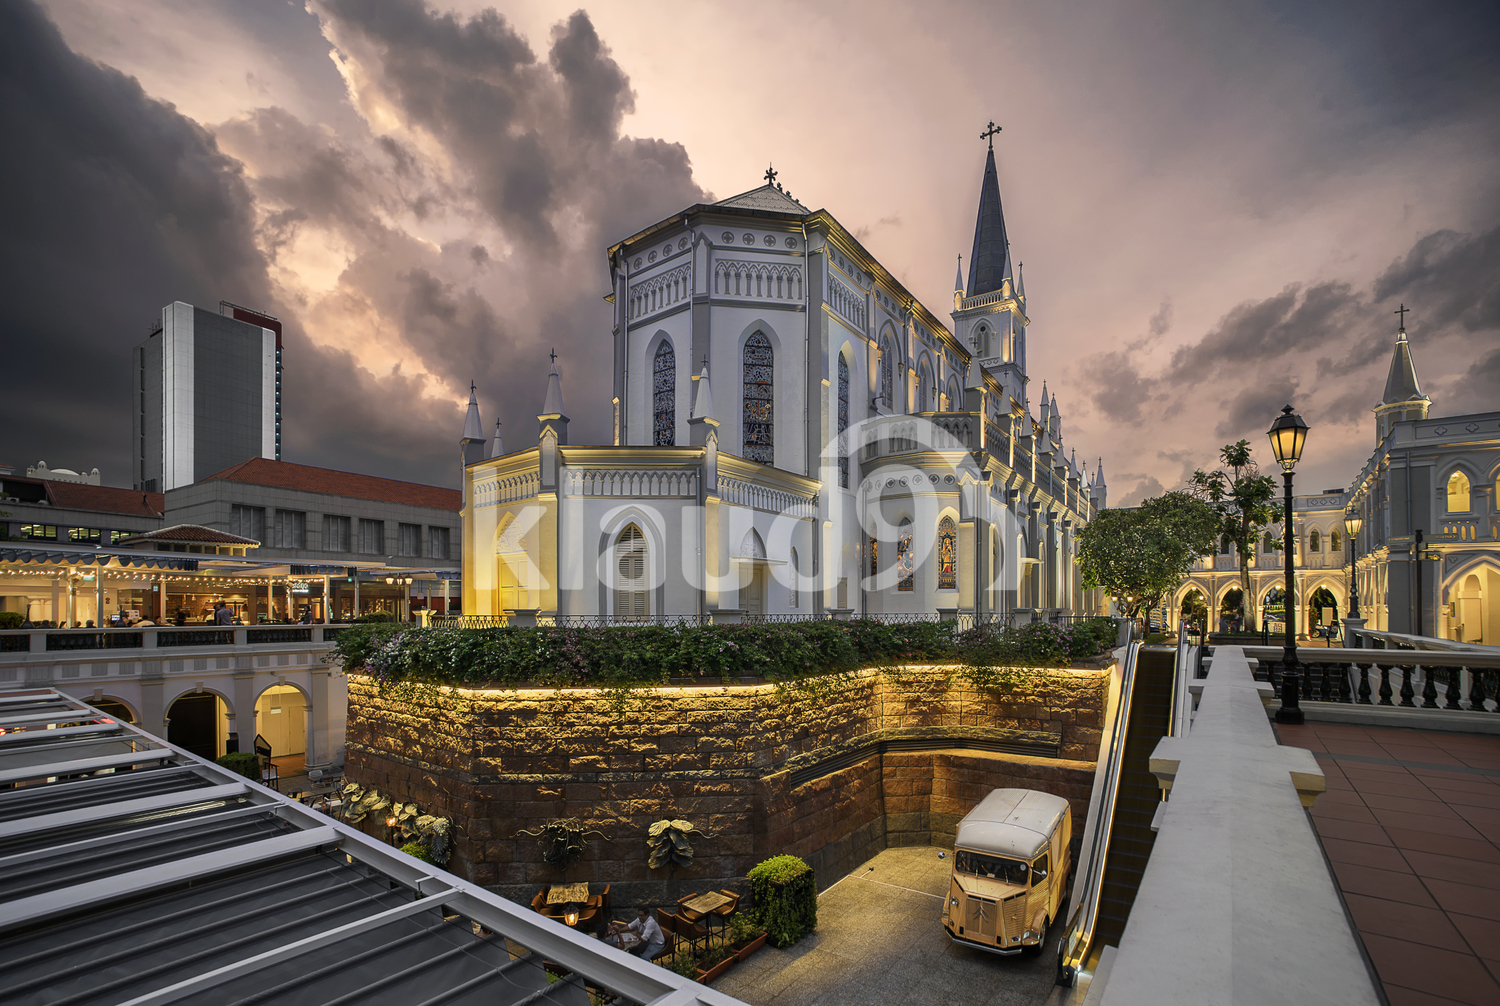 Chijmes in the evening